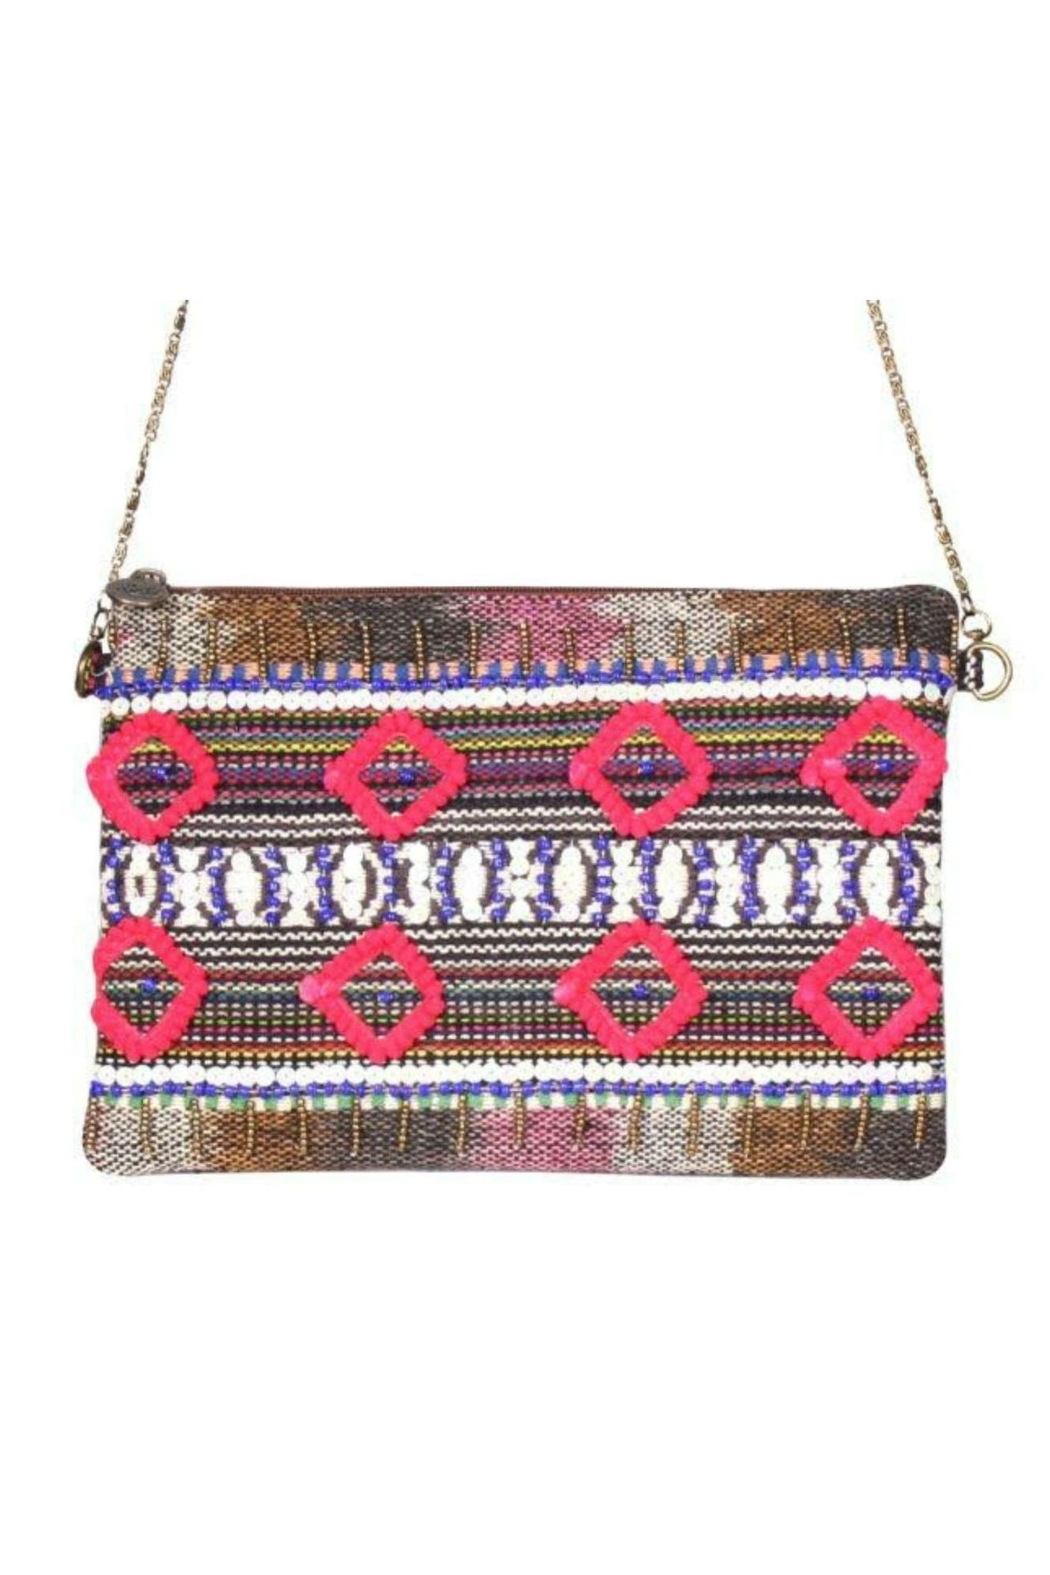 America & Beyond Beaded Embroidered Clutch - Main Image